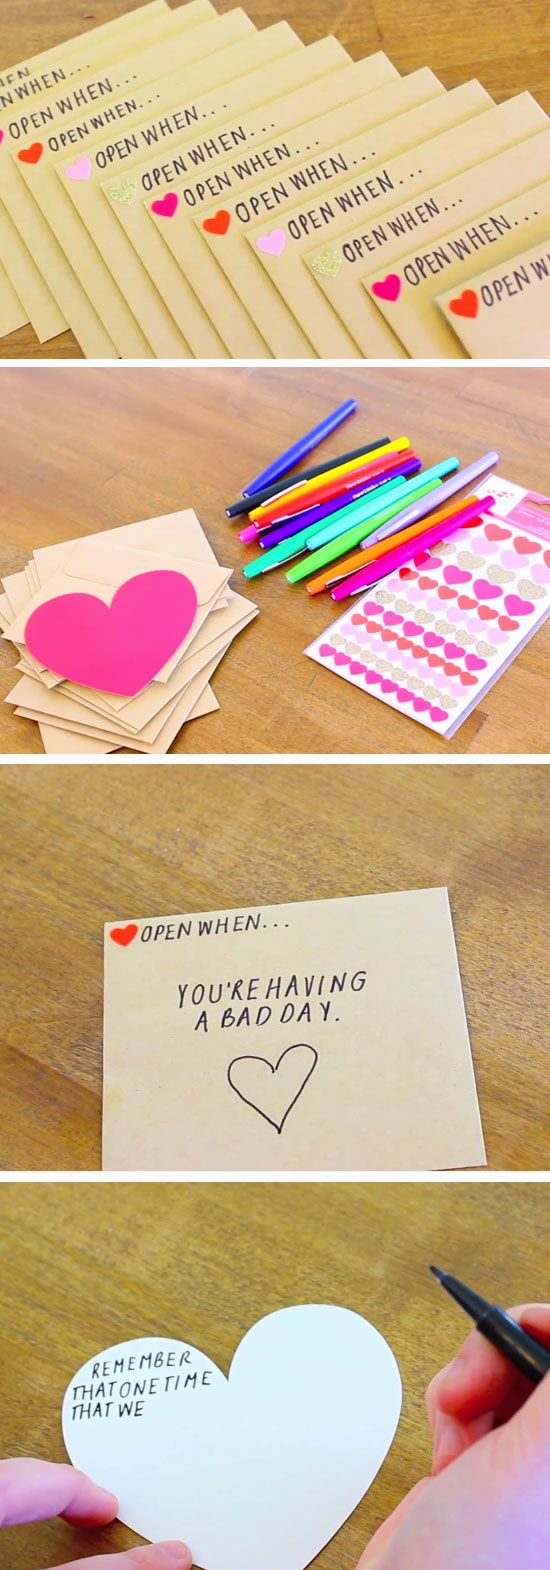 Best 25+ Birthday gifts ideas on Pinterest | Birthday presents ...